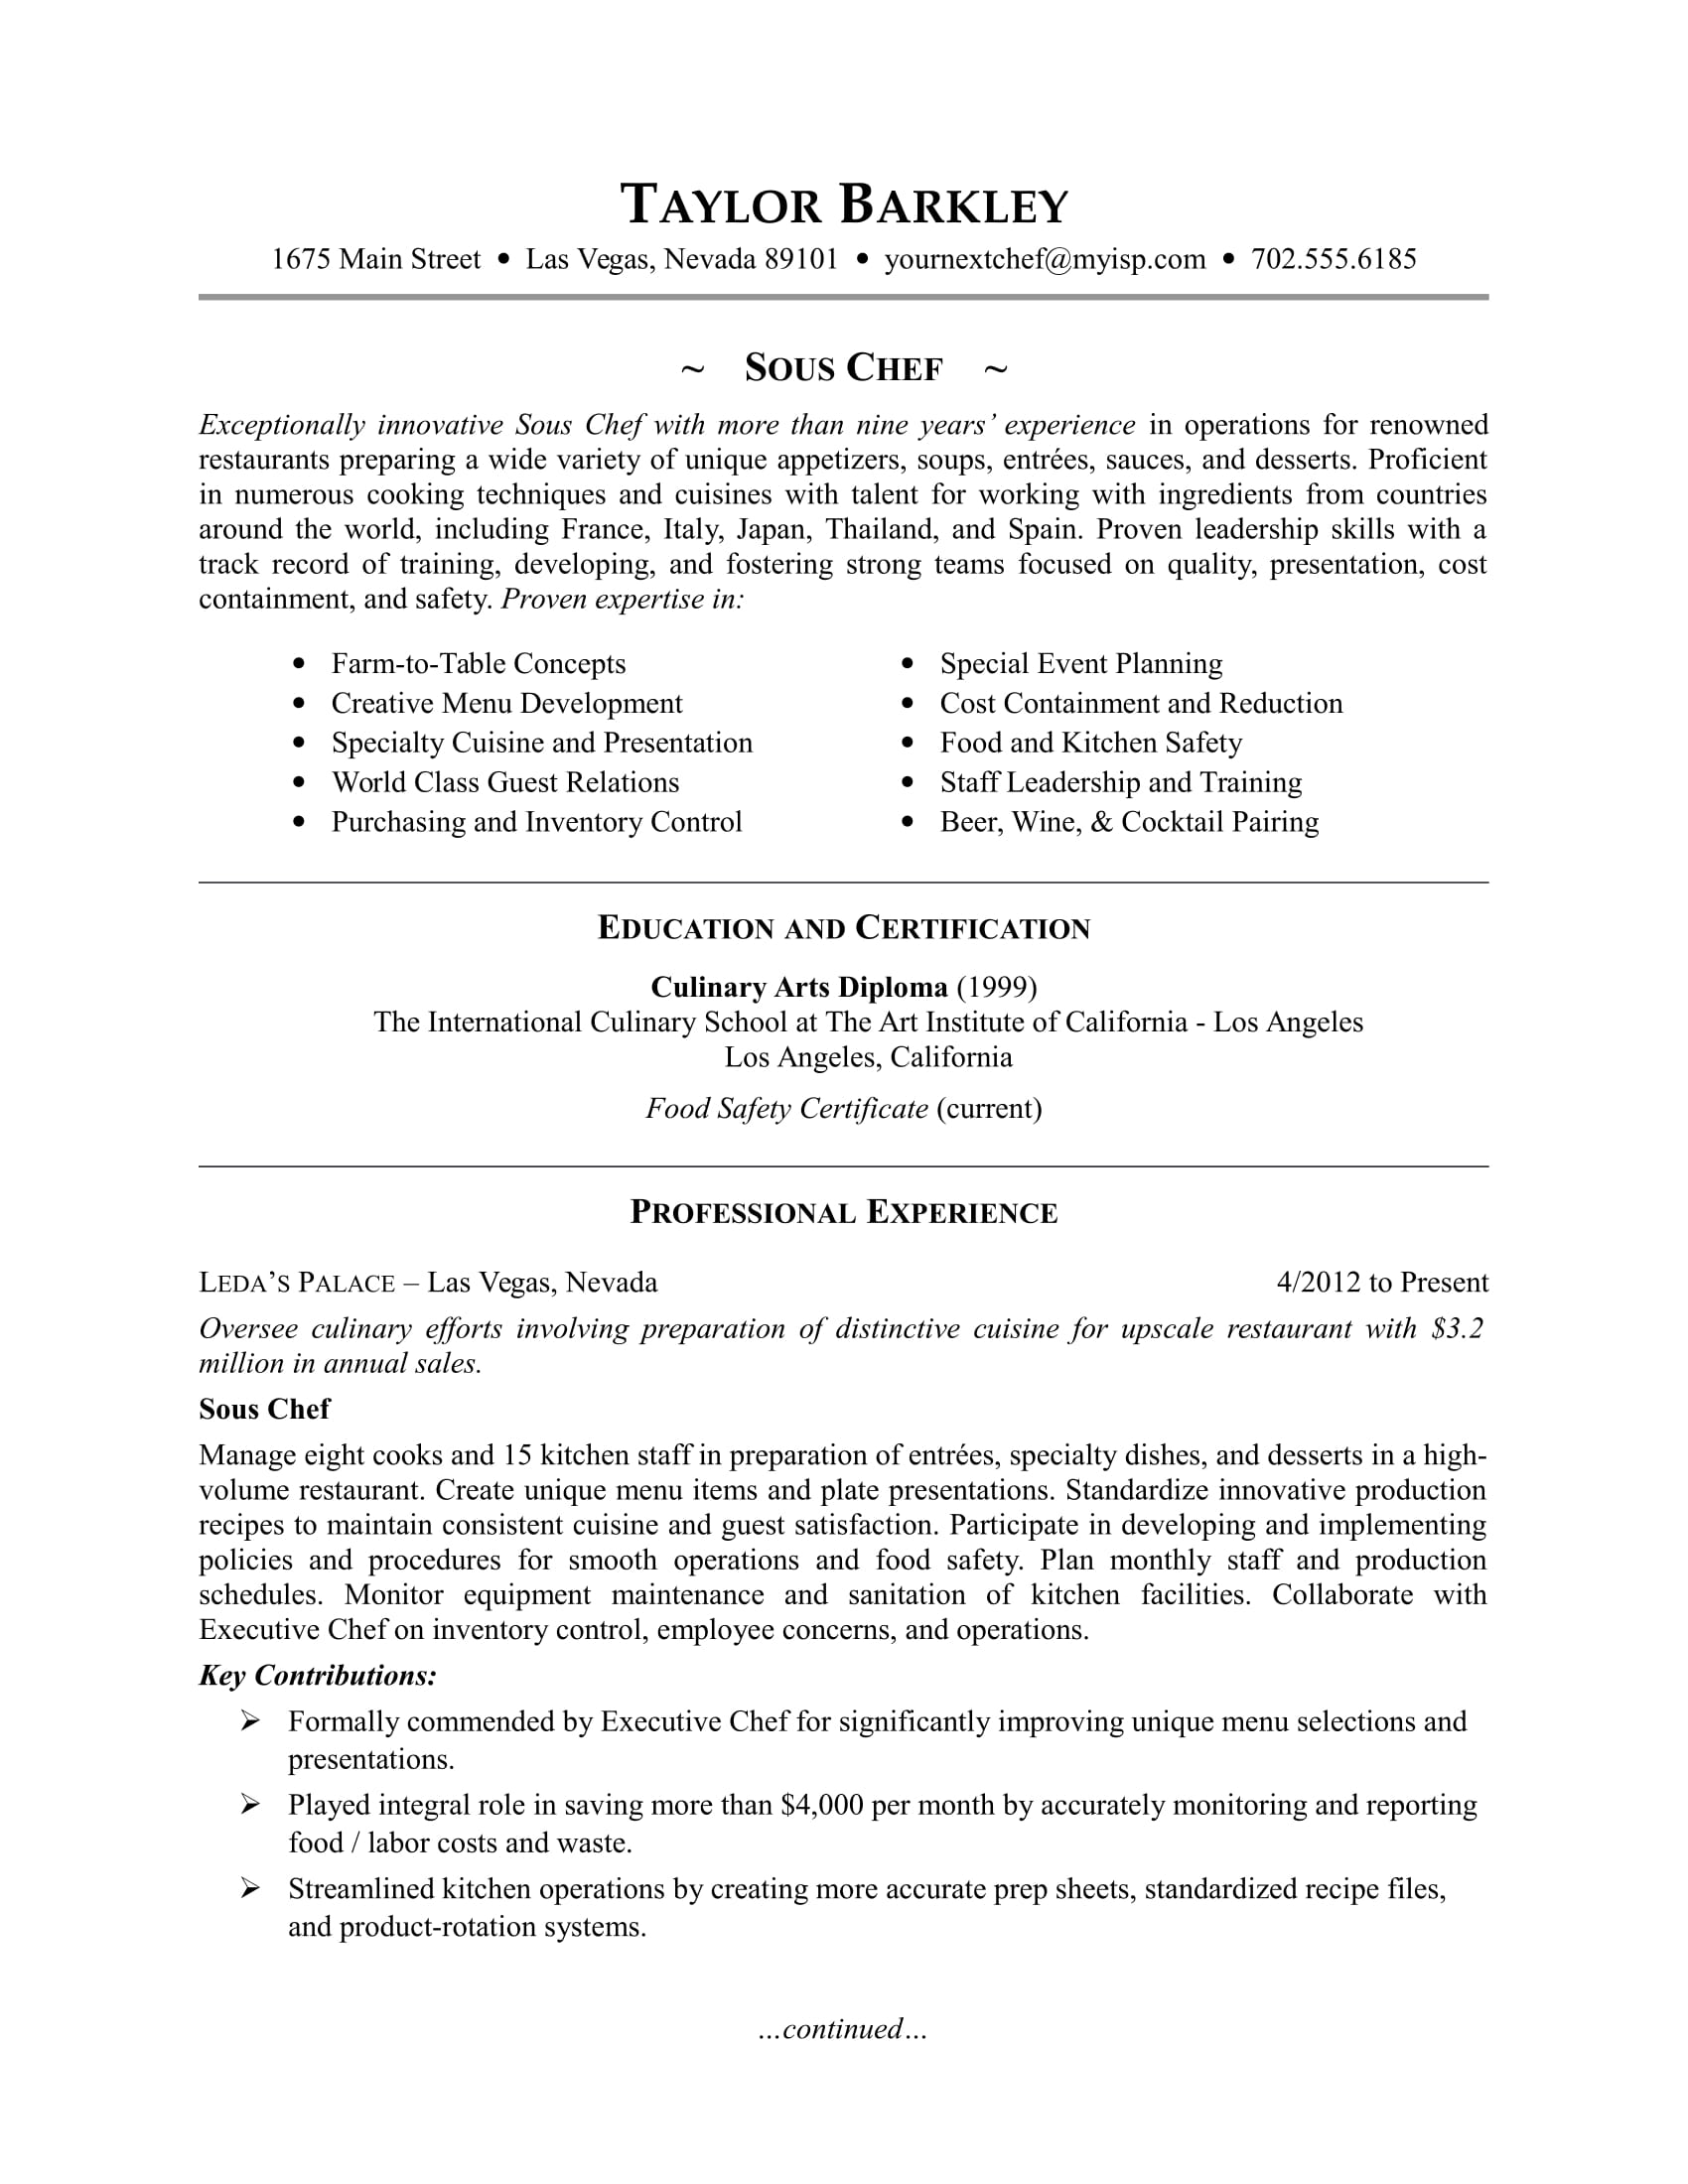 sample resume for a sous chef - Resume Sample Chef